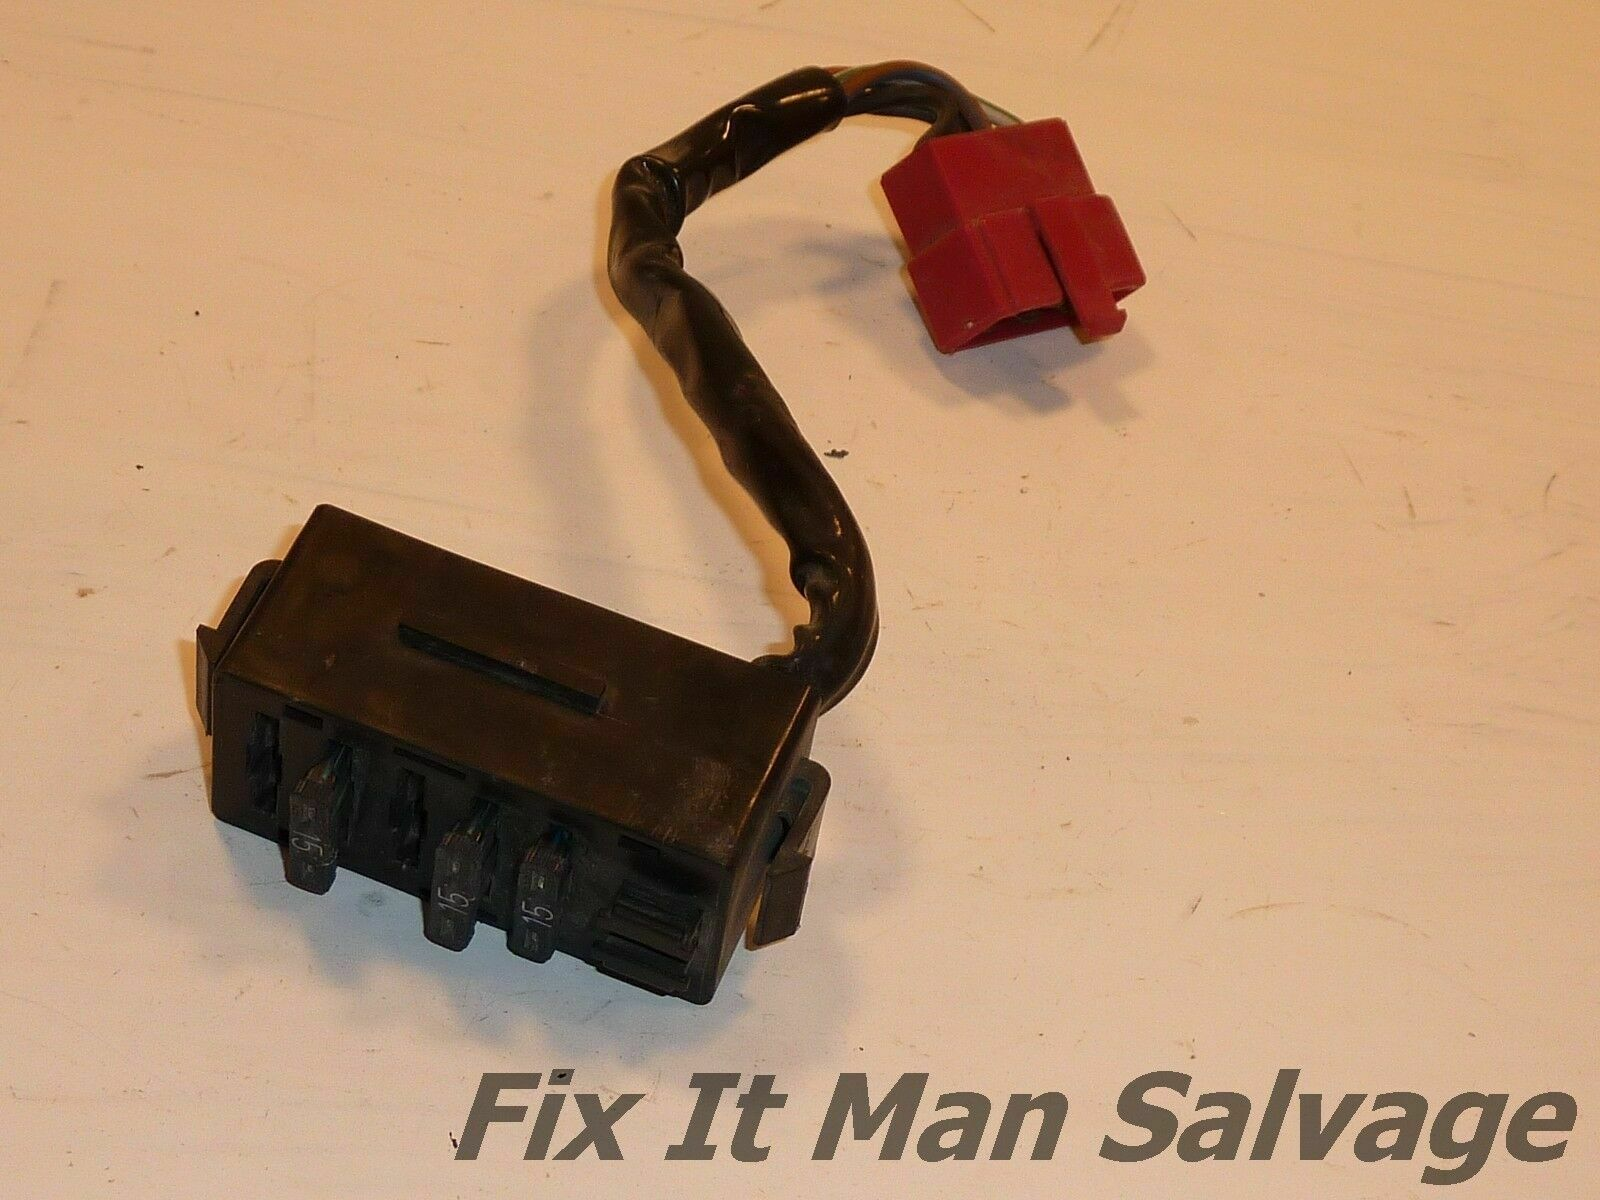 83 honda magna v65 fuse panel oem fuse box fusebox holder wire rh picclick com